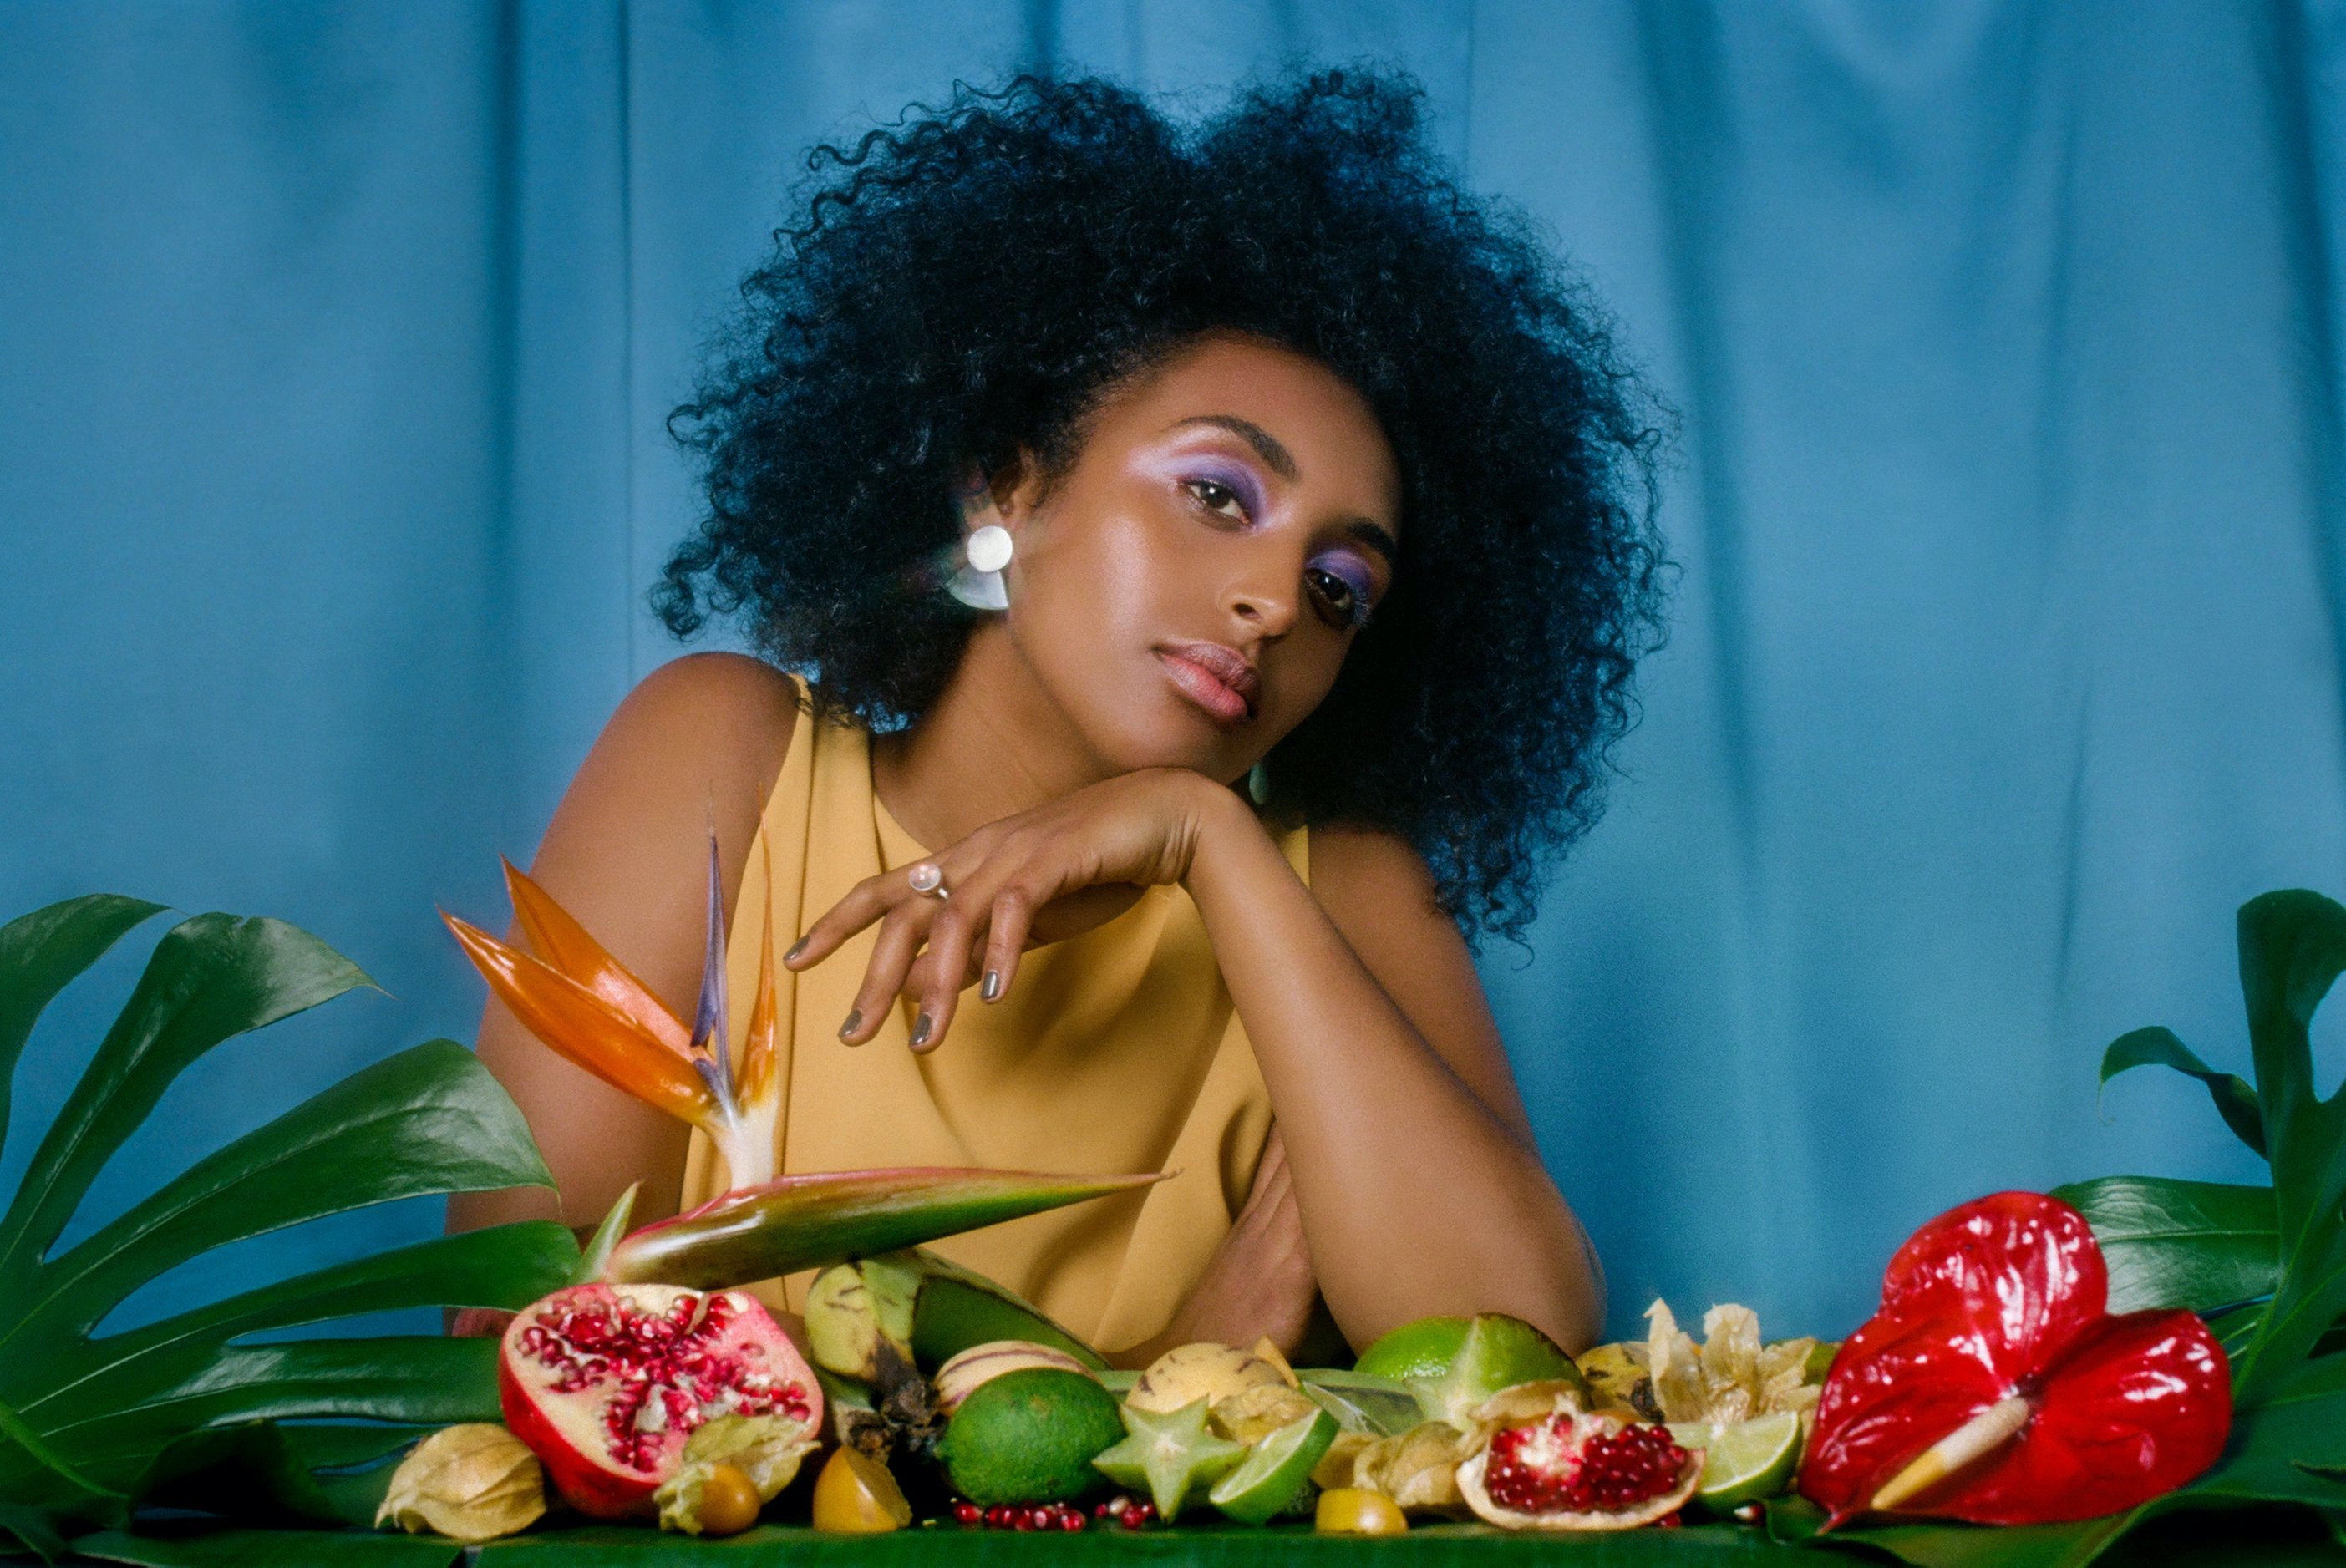 Woman wearing jewelry sits at a table covered in fruit